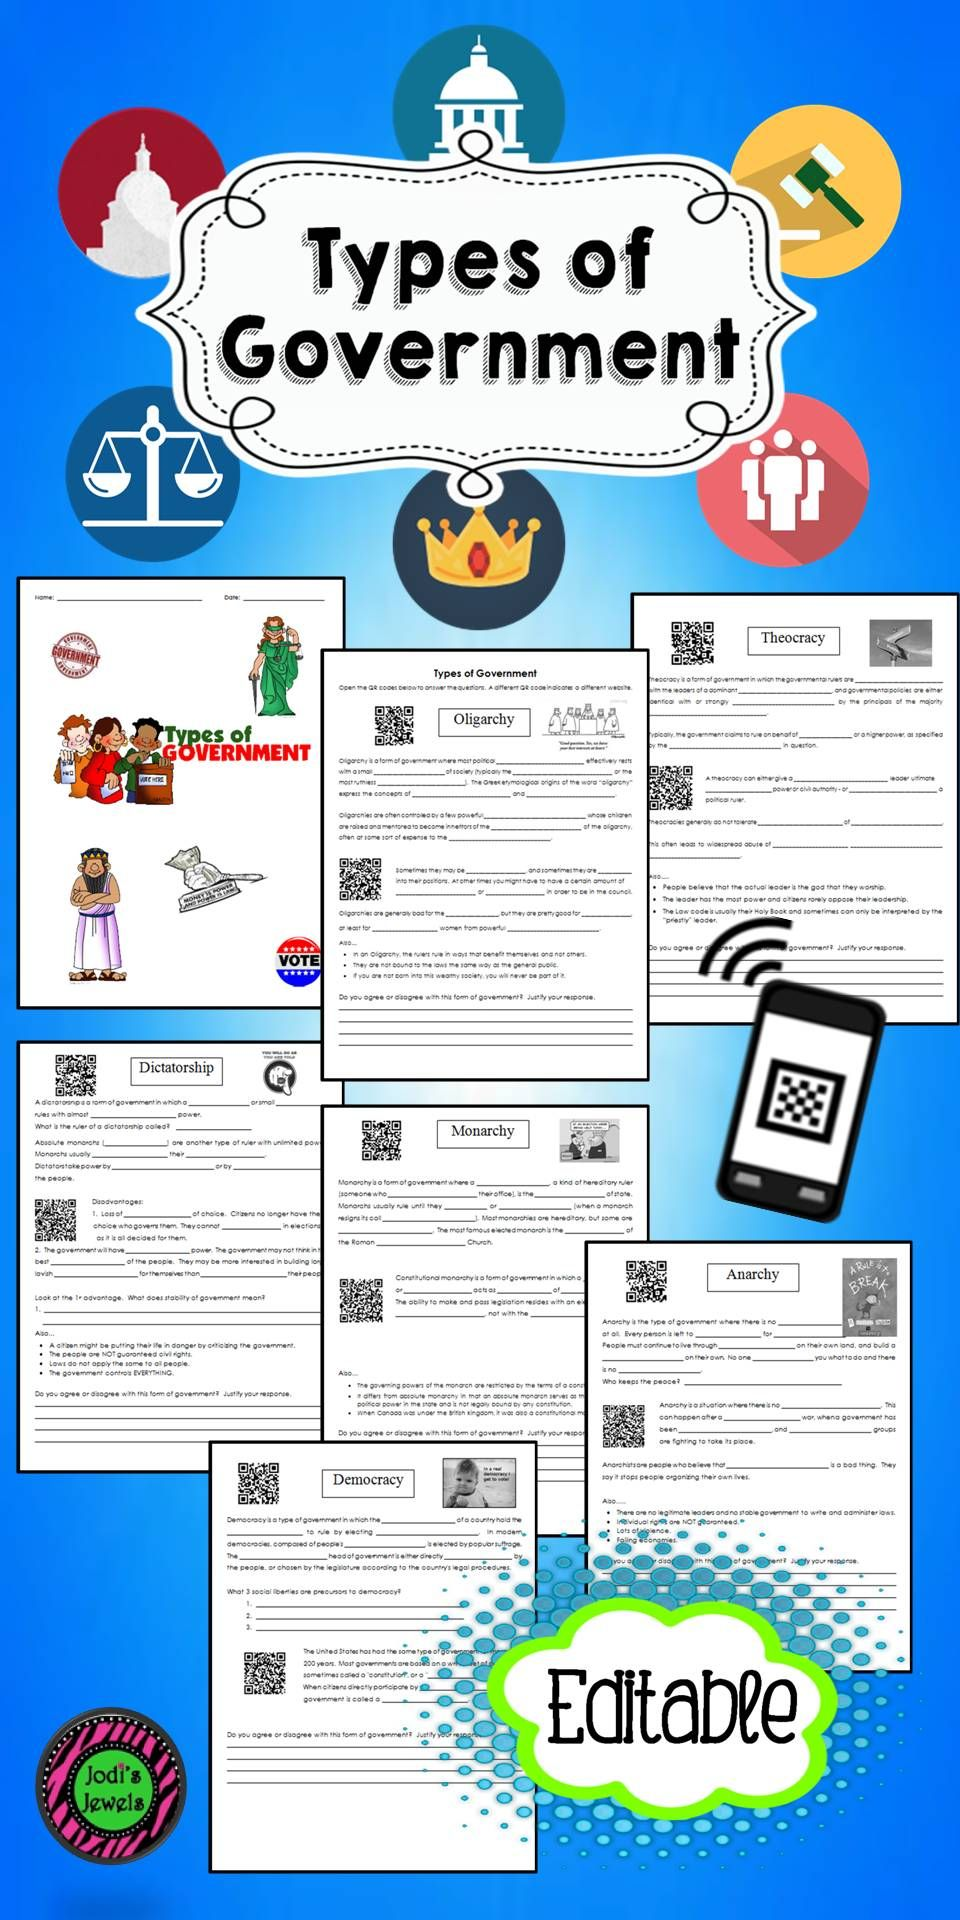 types of government qr code activity qr codes worksheets and activities. Black Bedroom Furniture Sets. Home Design Ideas